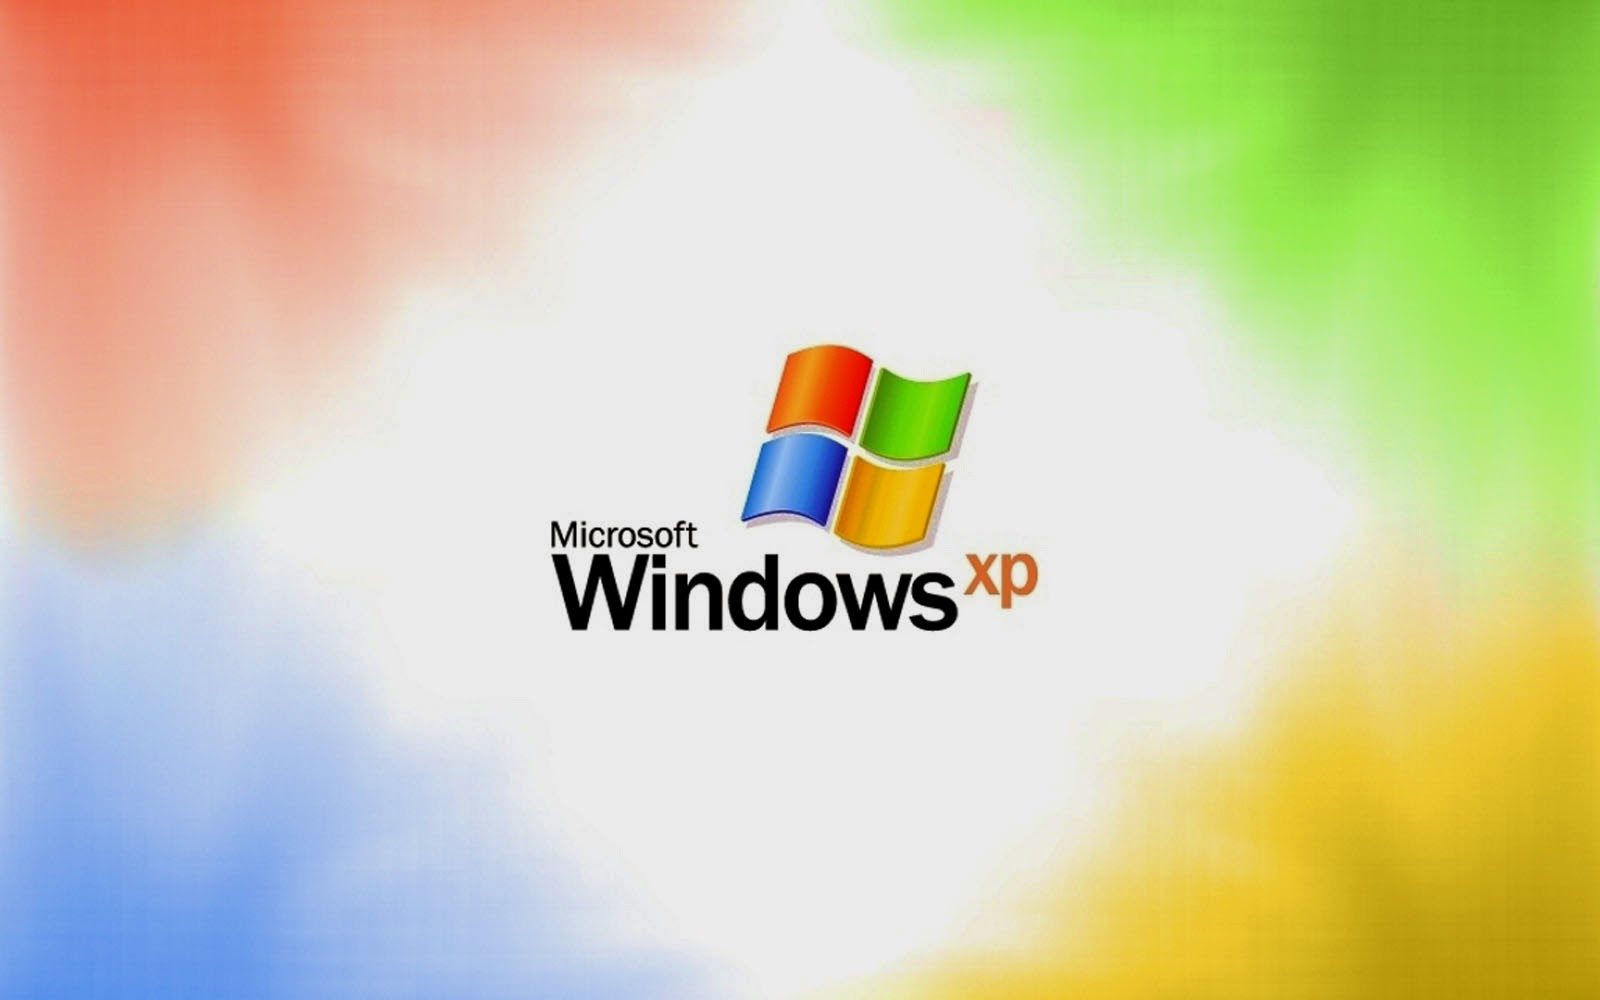 Wallpapers windows xp home wallpapers for Home wallpaper videos